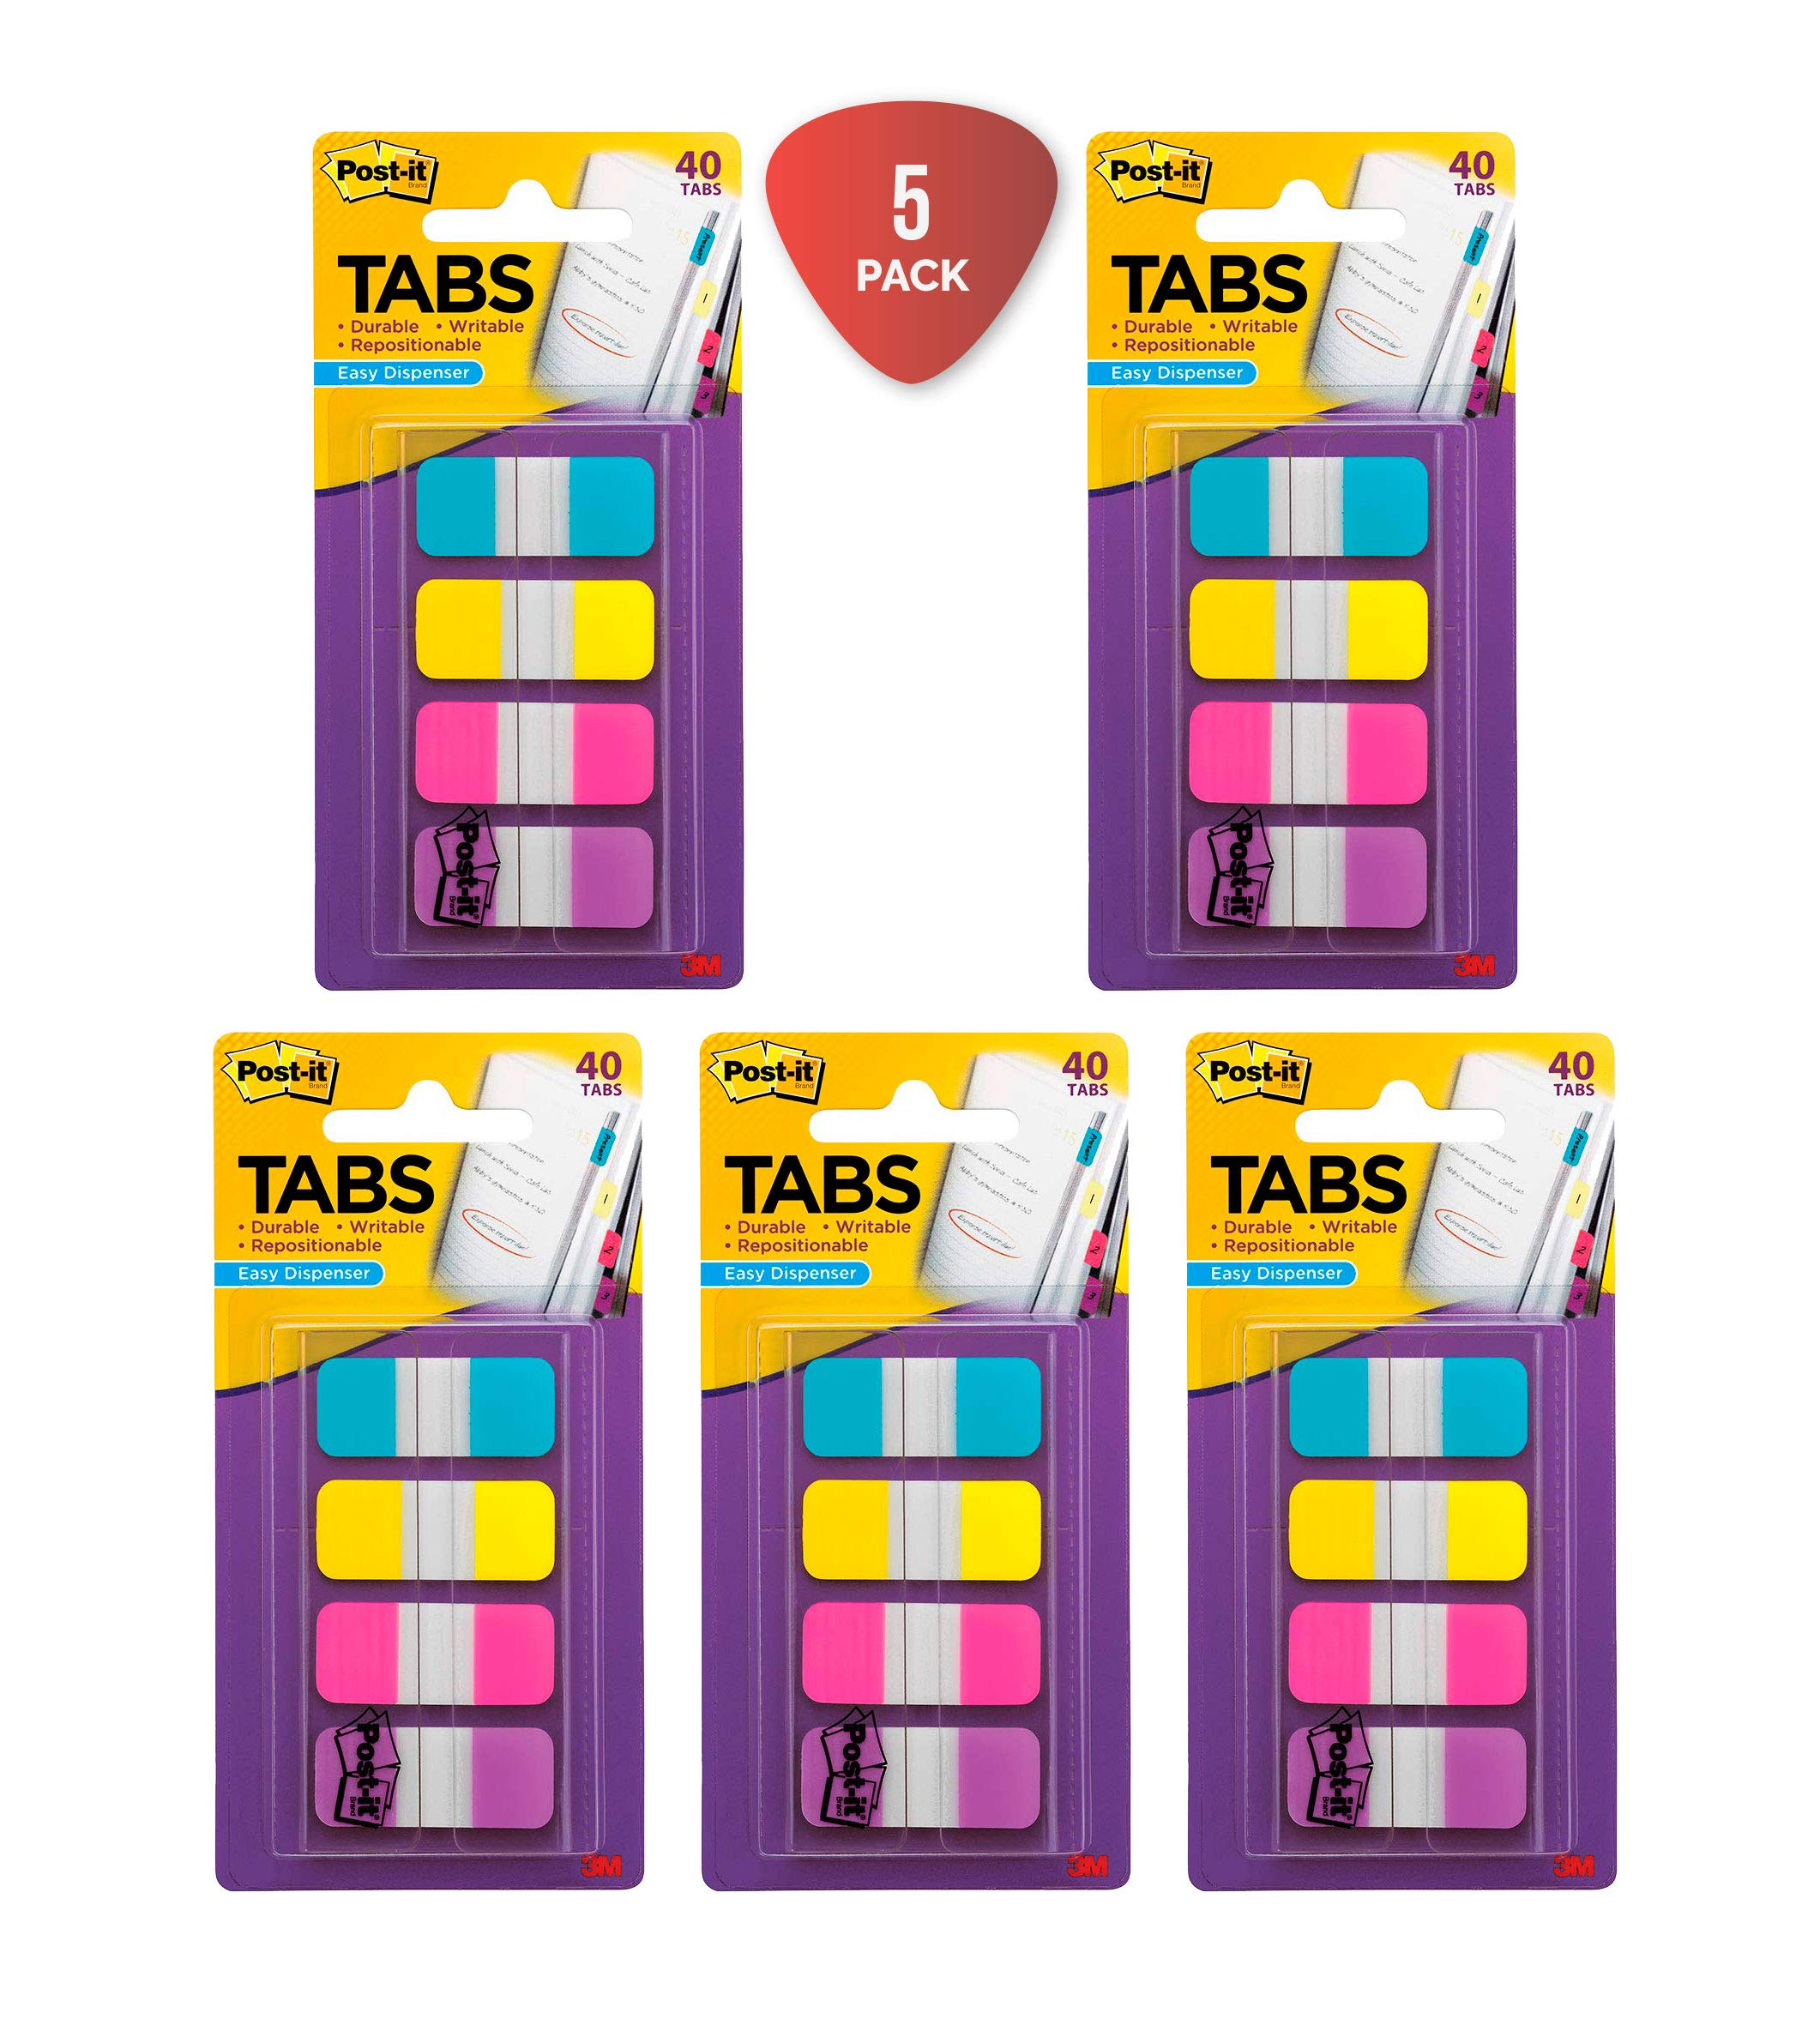 Post-it Tabs.625 in. Solid, Aqua, Yellow, Pink, Violet, Durable, Writable, Repositionable, Sticks Securely, Removes Cleanly, 10/Color, 40/Dispenser, (676-AYPV) Pack of 5 by Post-it